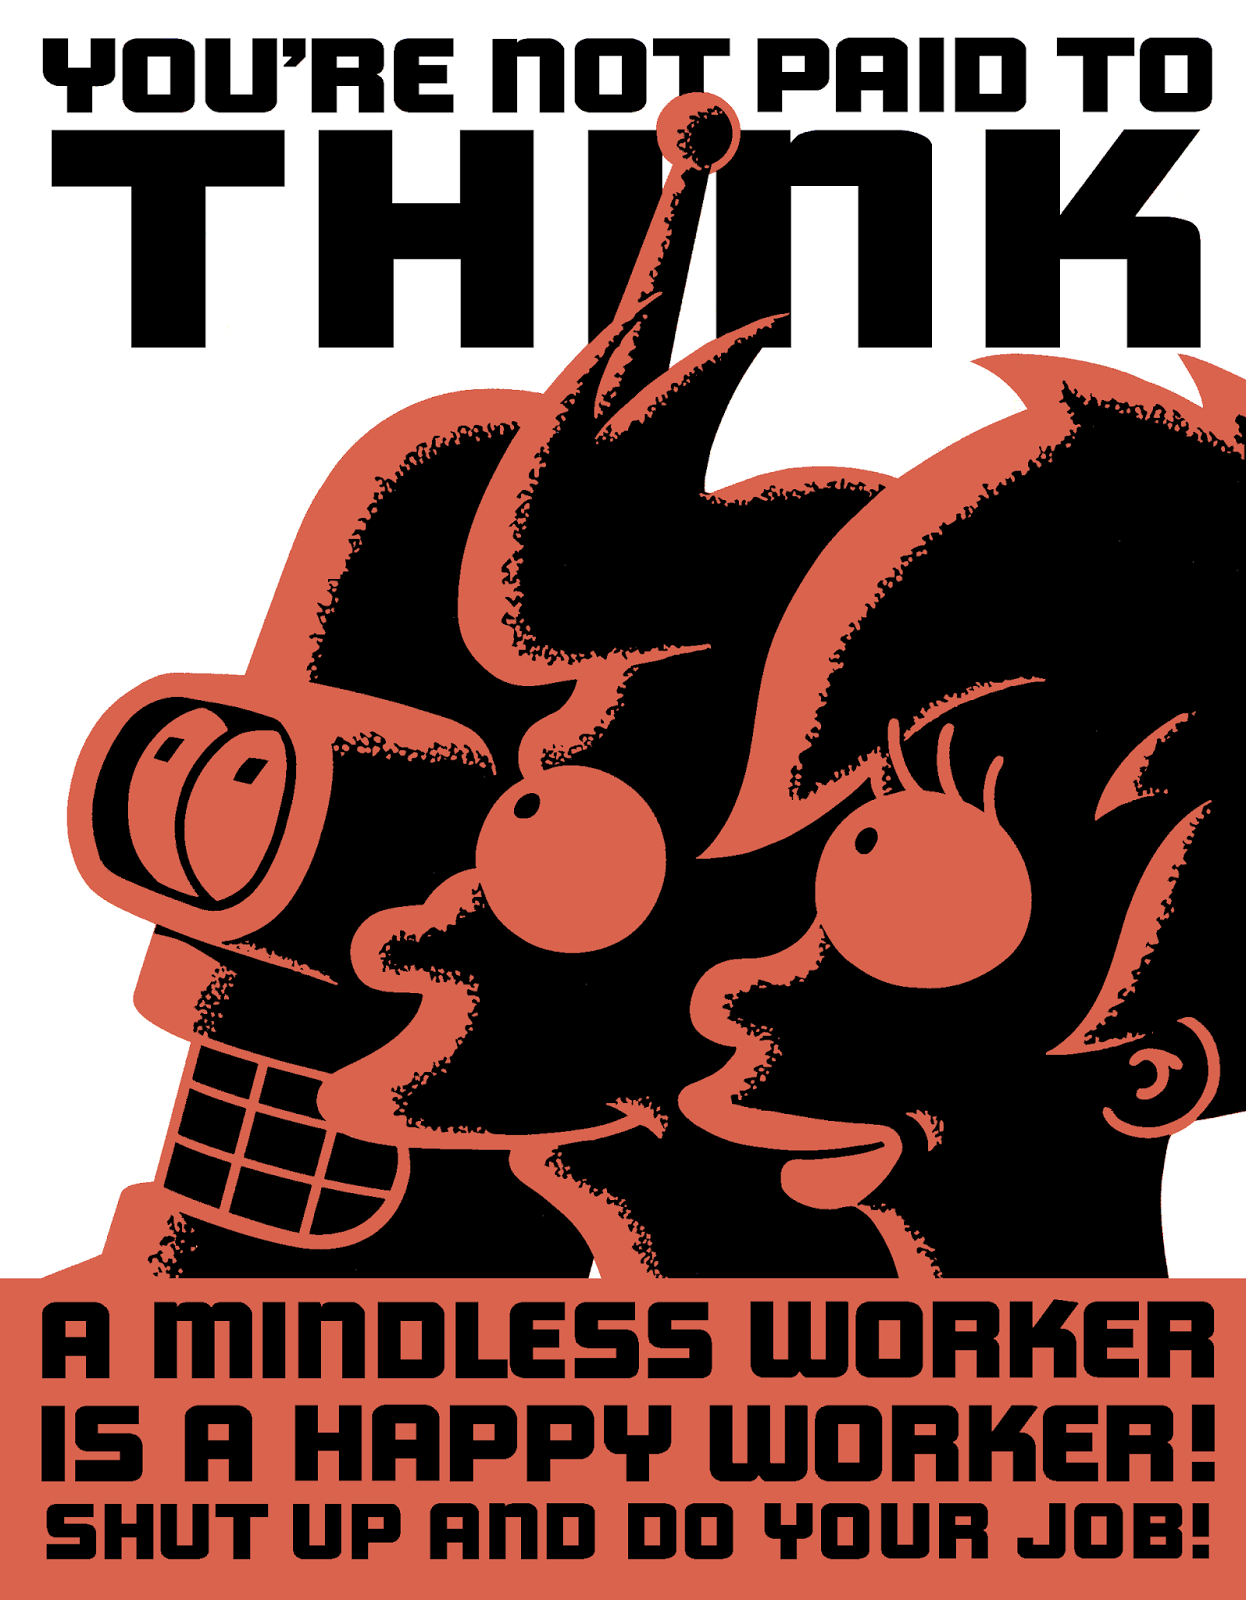 You're not paid to think...